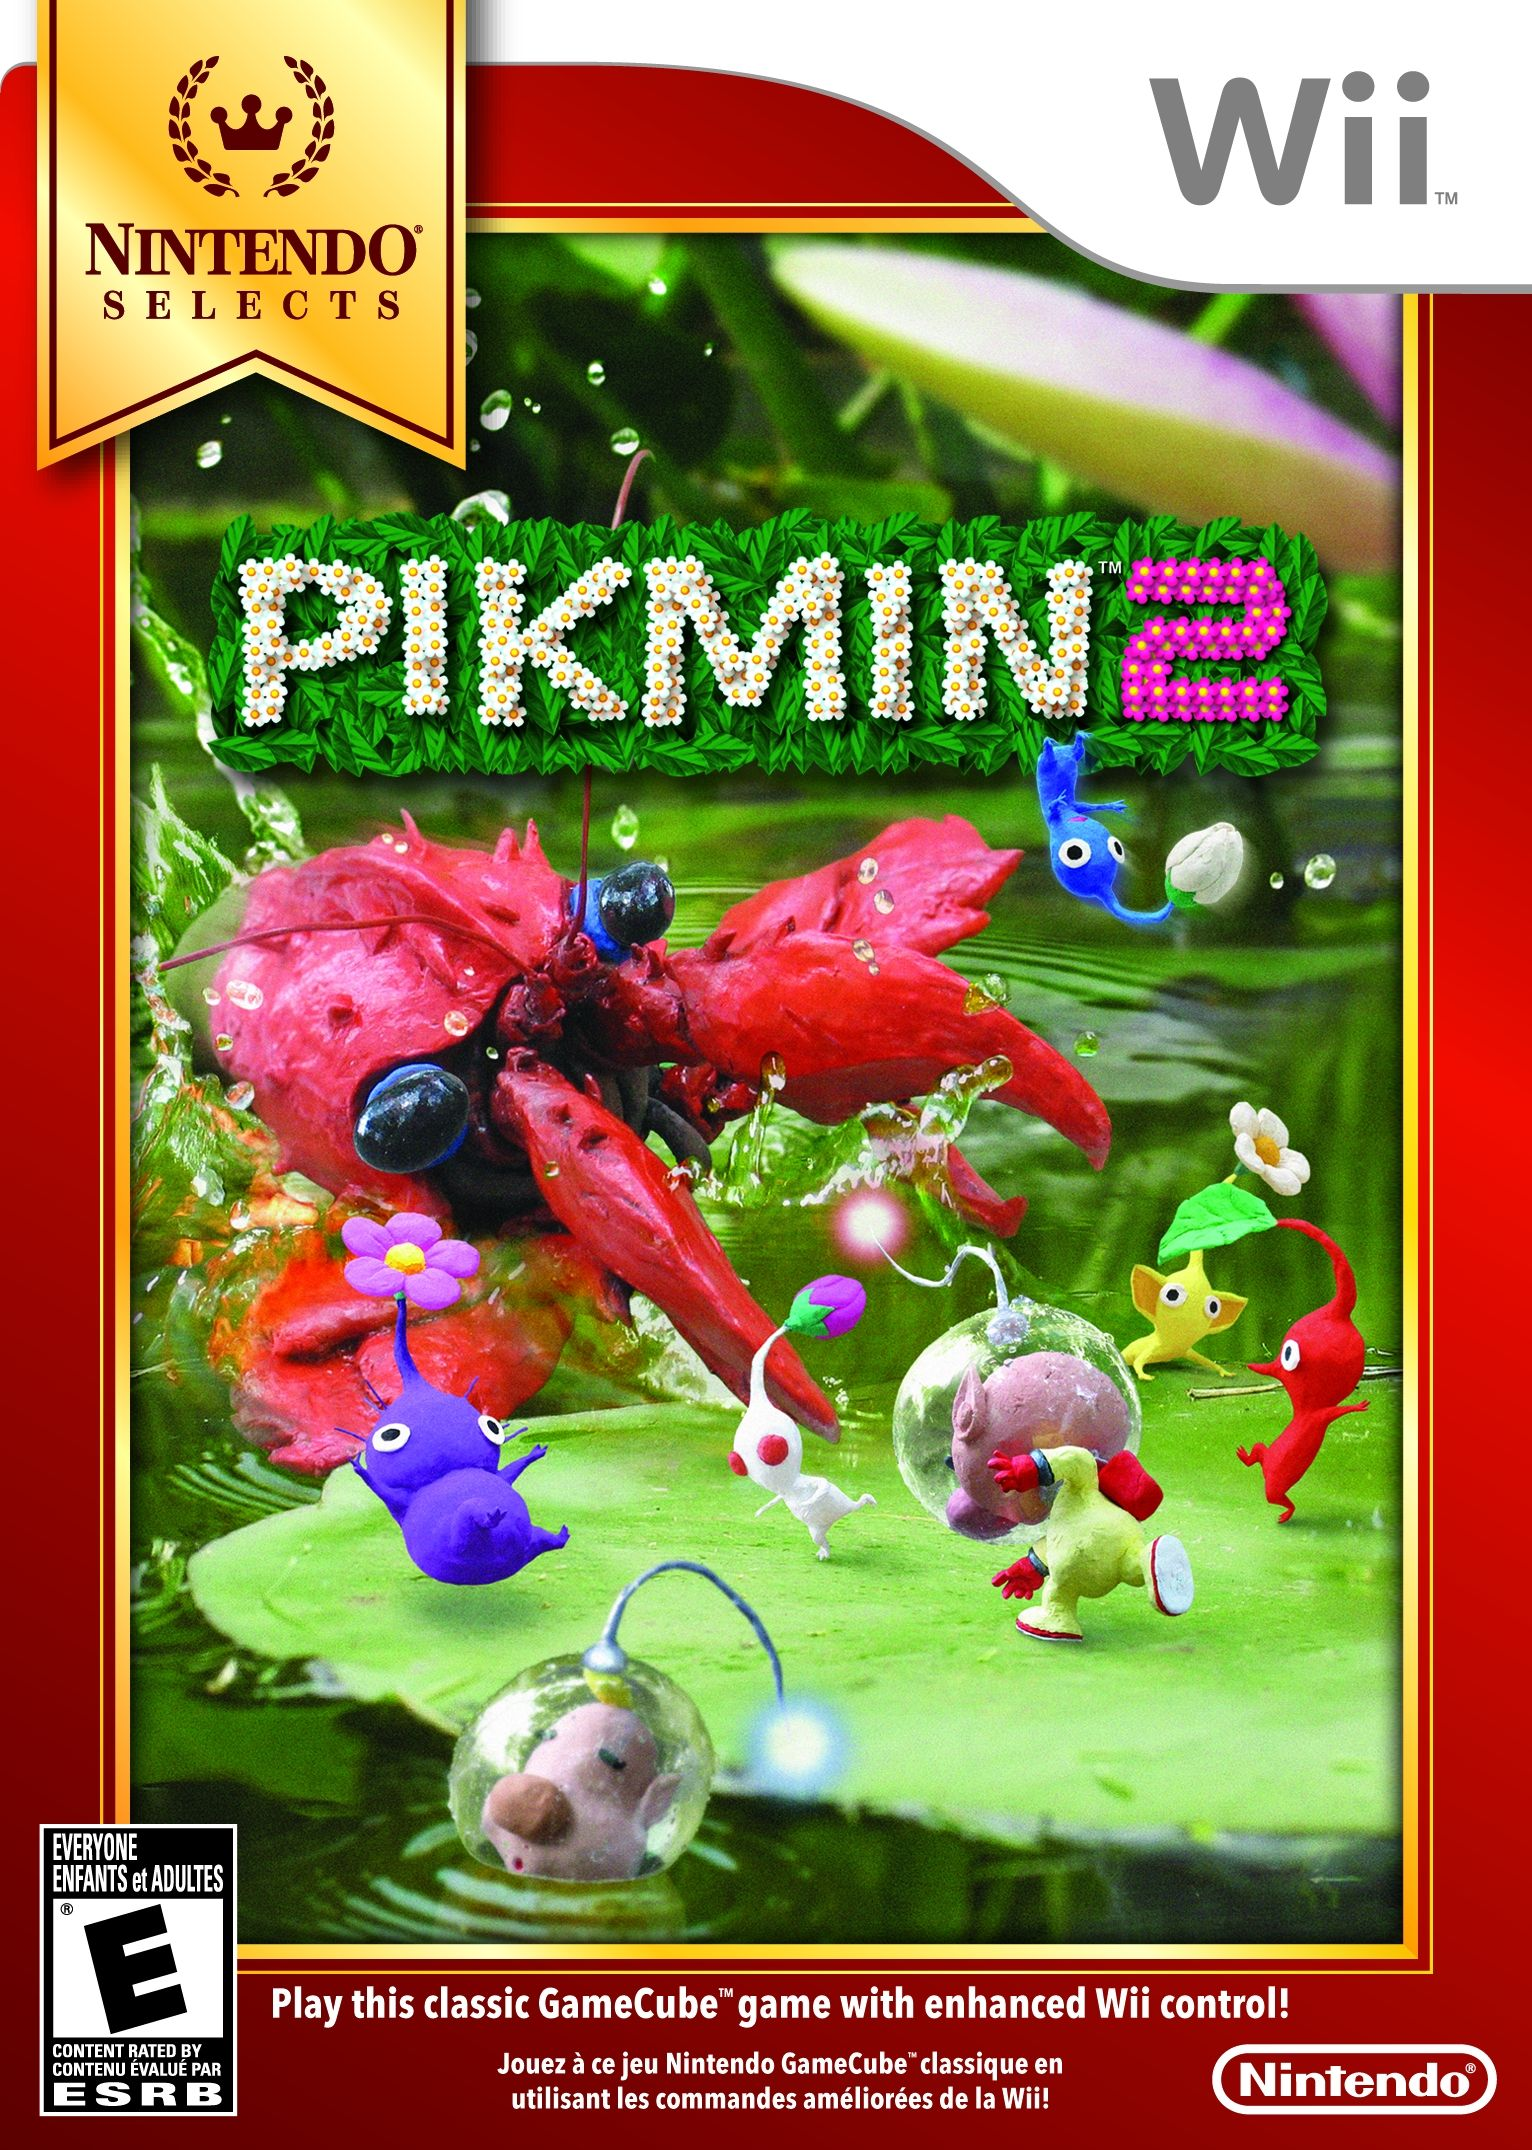 Pikmin 2 Full Game Free Pc Download Play Download Pikmin 2 For